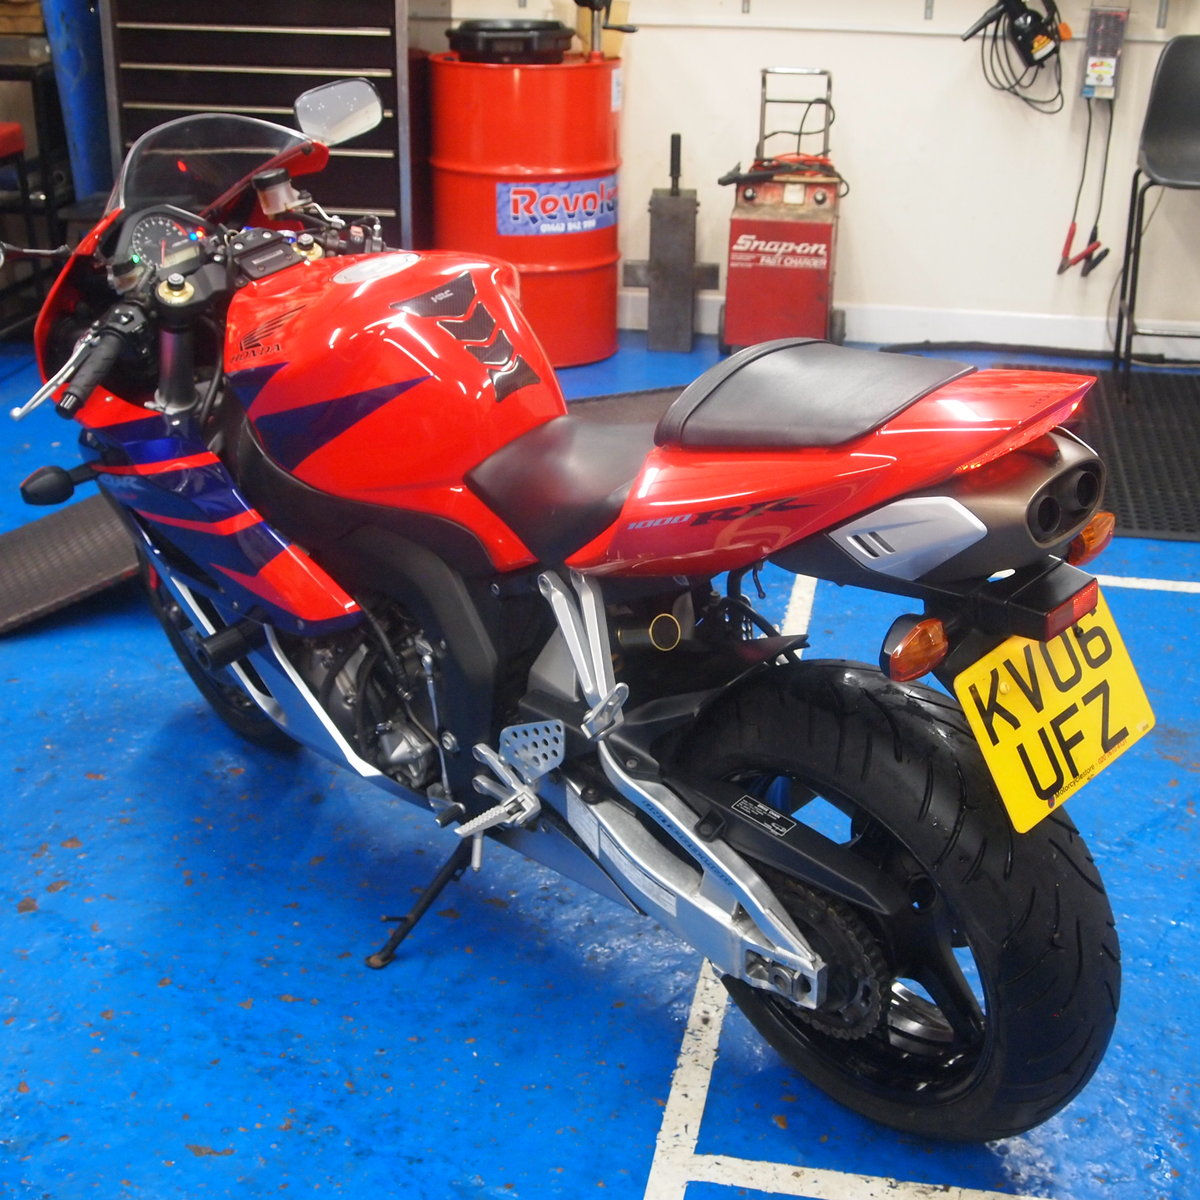 2006 Honda CBR1000RR5, FSH, Low Mileage, RESERVED FOR KARL. SOLD (picture 3 of 12)